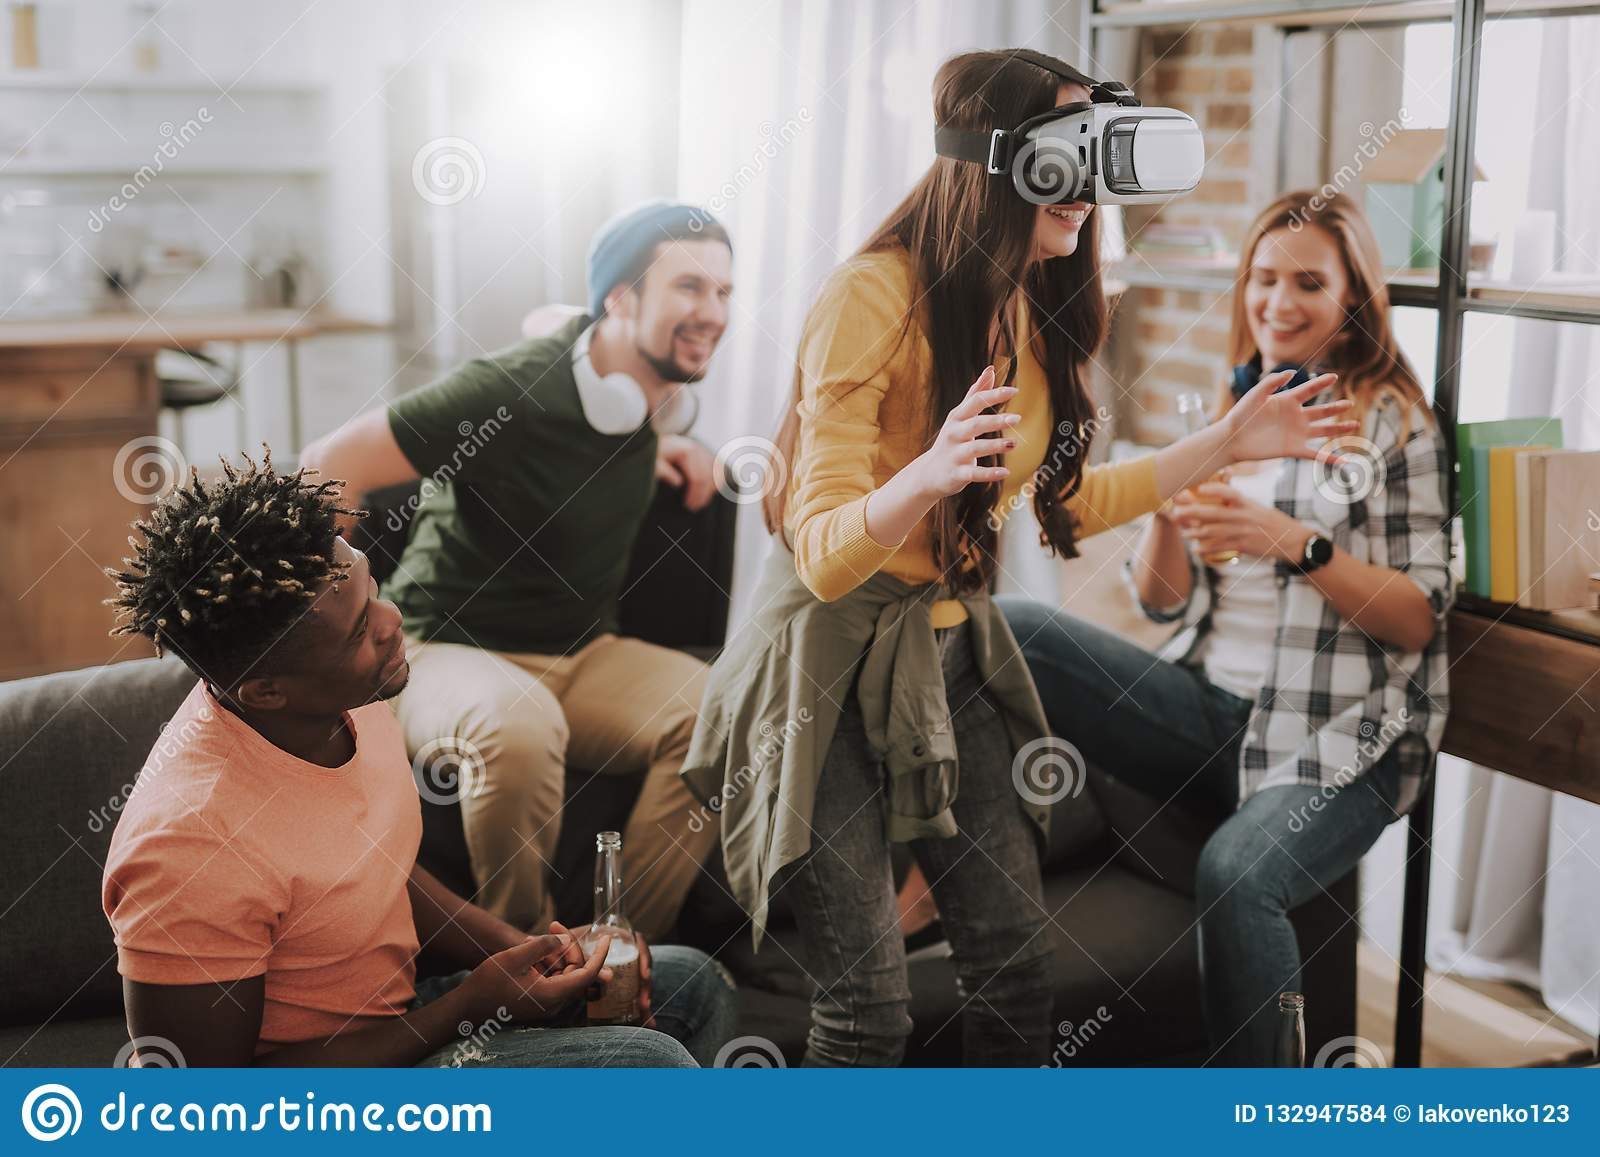 Young woman using VR headset while spending time with friends